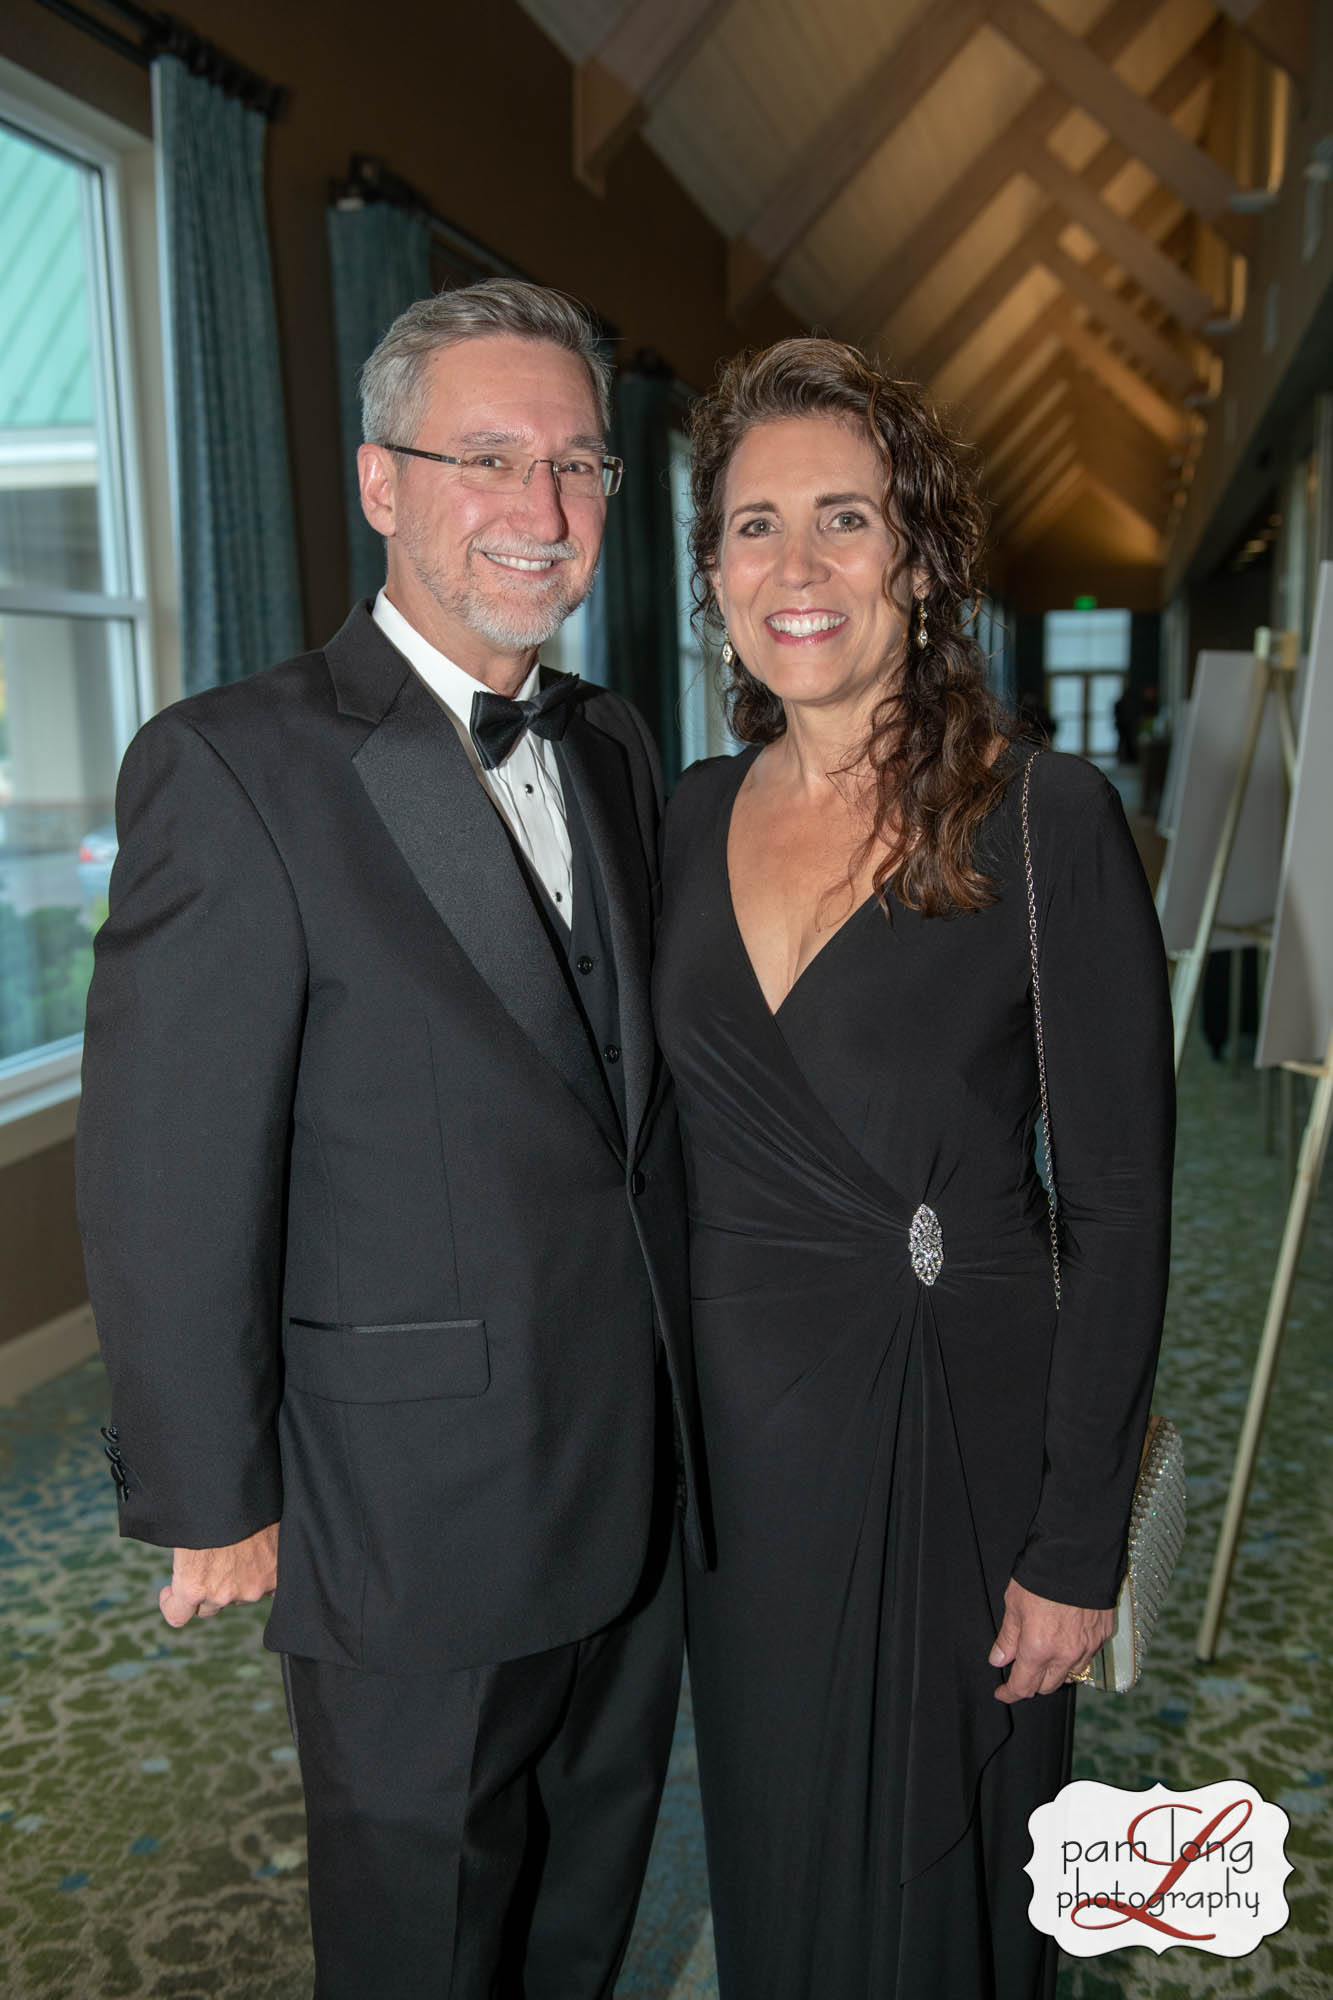 Pam-Long-Photography-HoCo-Chamber-20191005-31